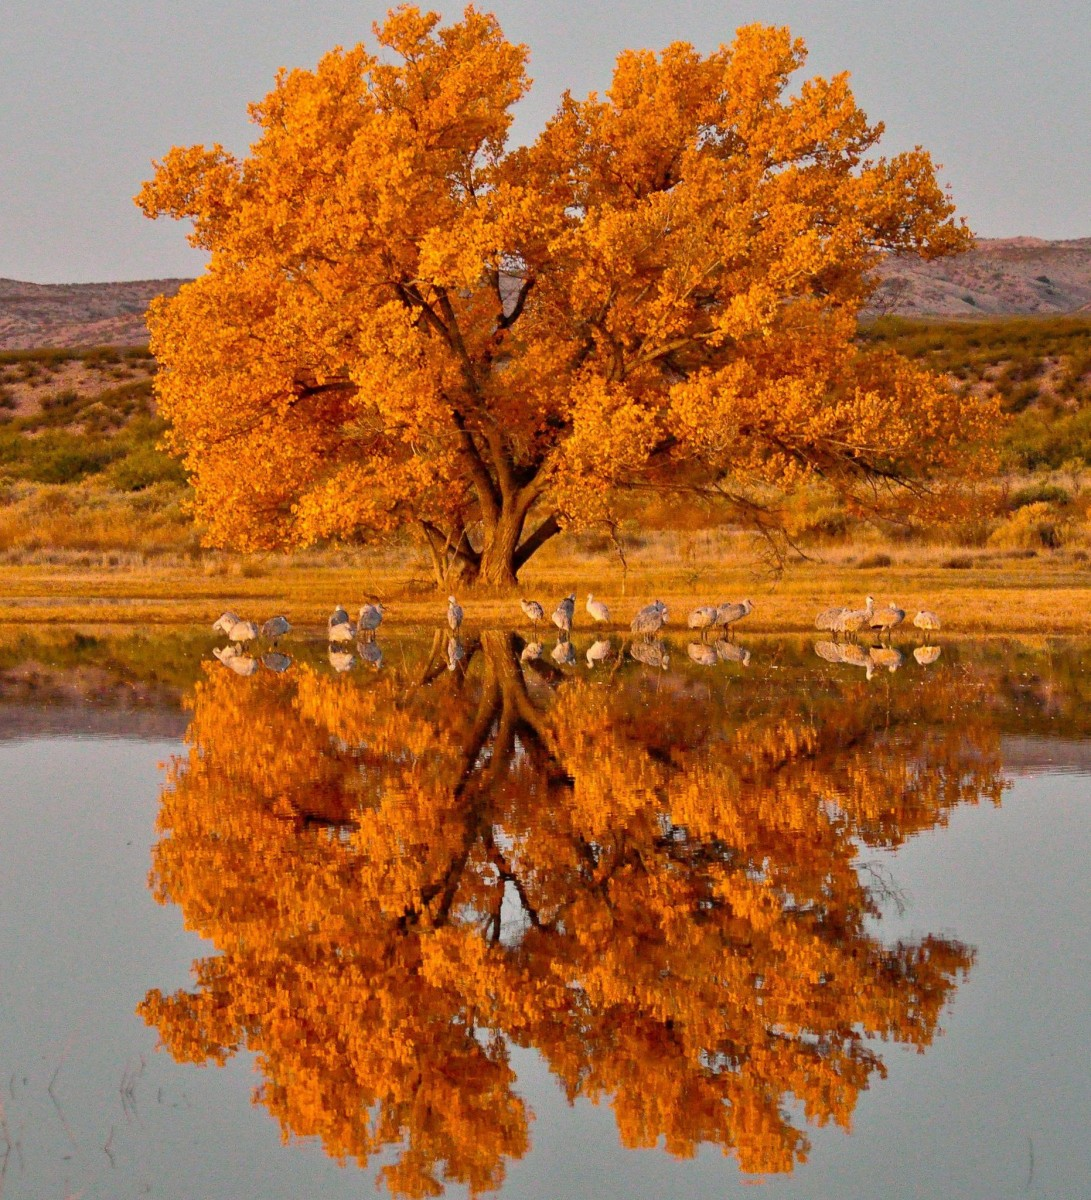 A tree with bright yellow leaves stands next to a still pond that shows the tree's reflection.